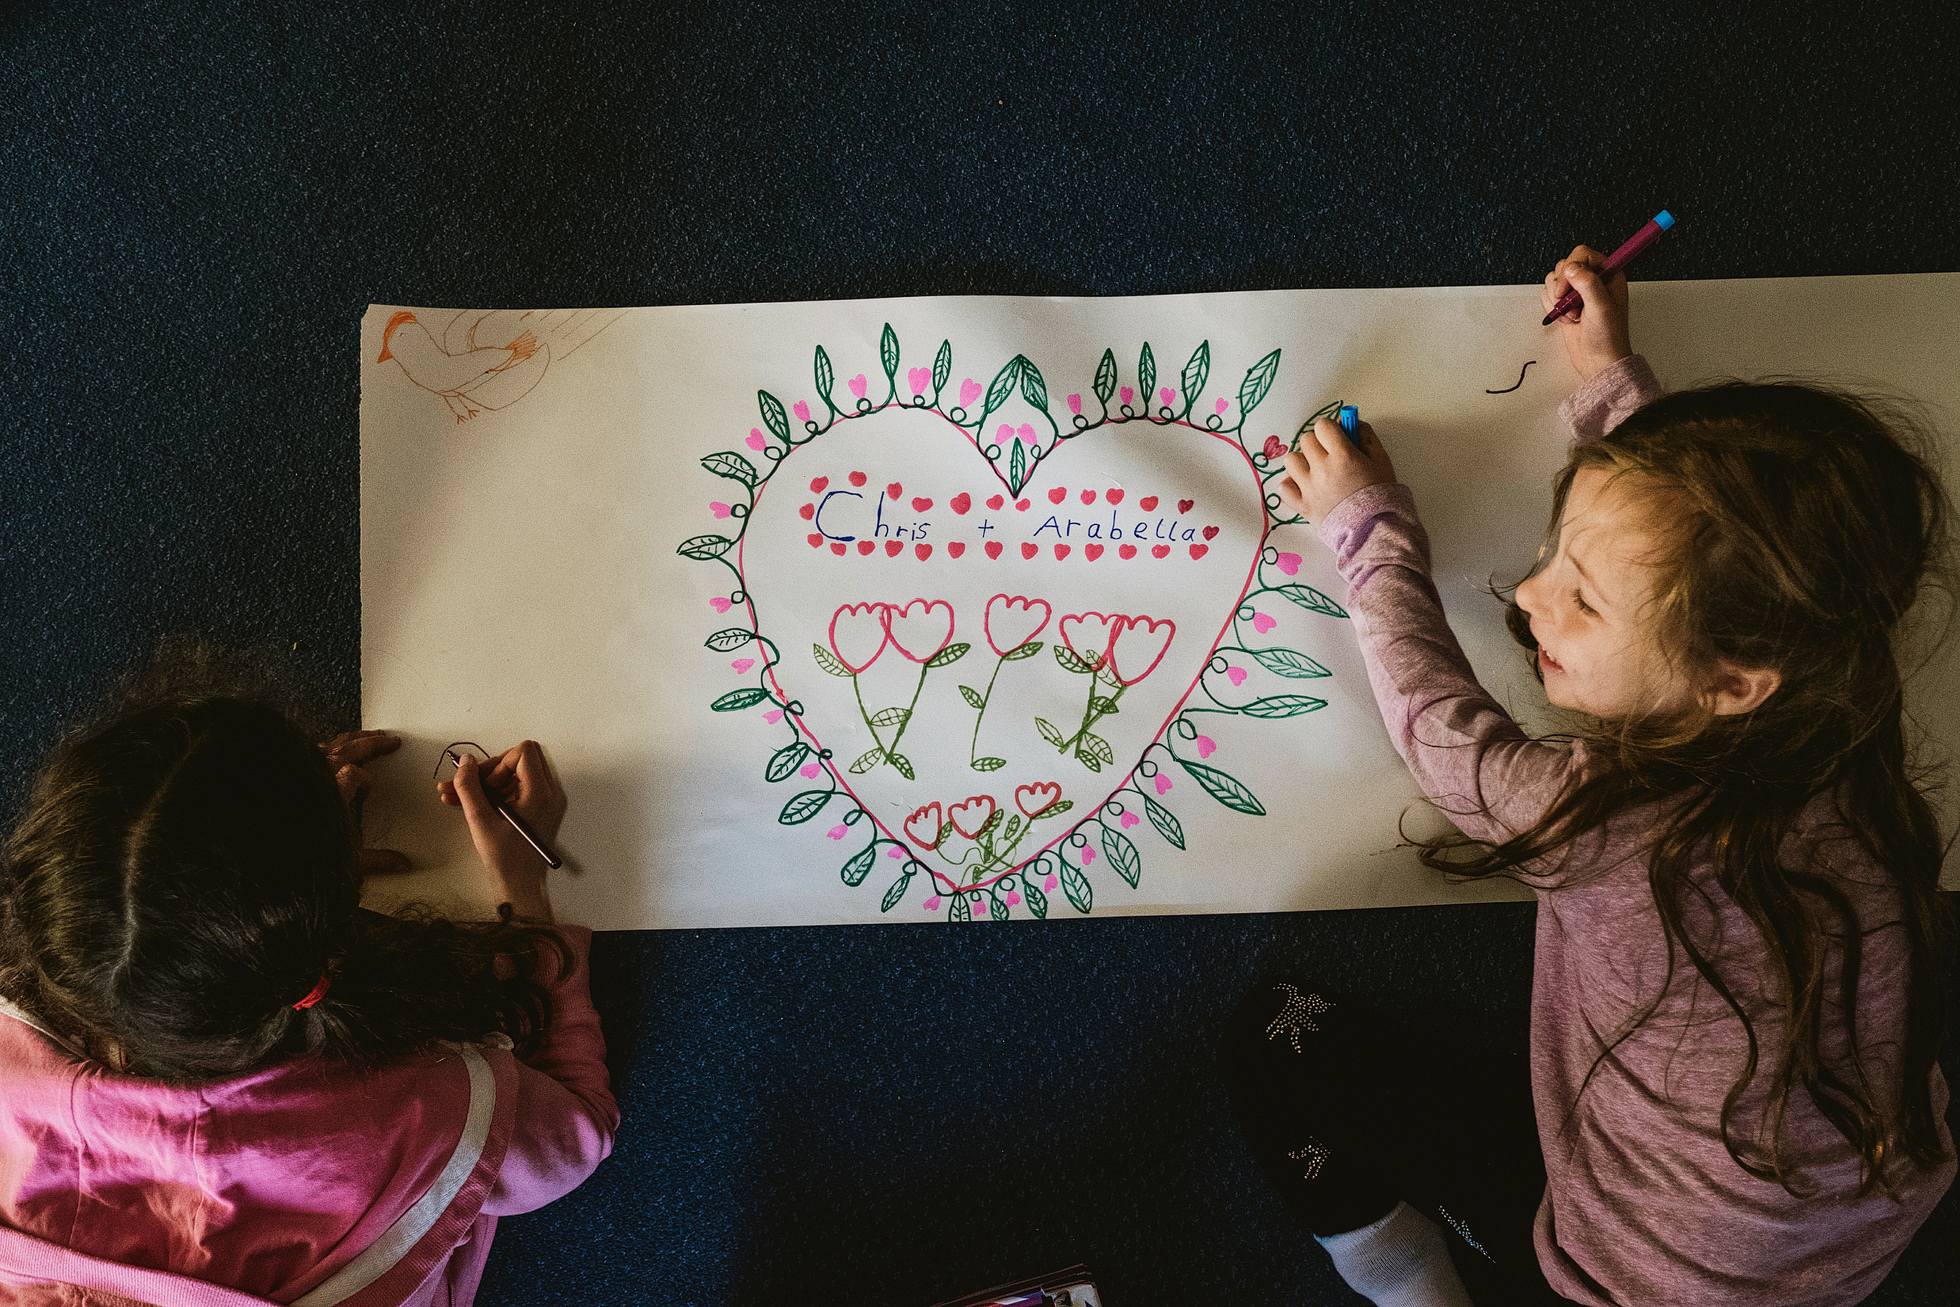 Photograph of children drawing during Lineham Farm wedding preparations